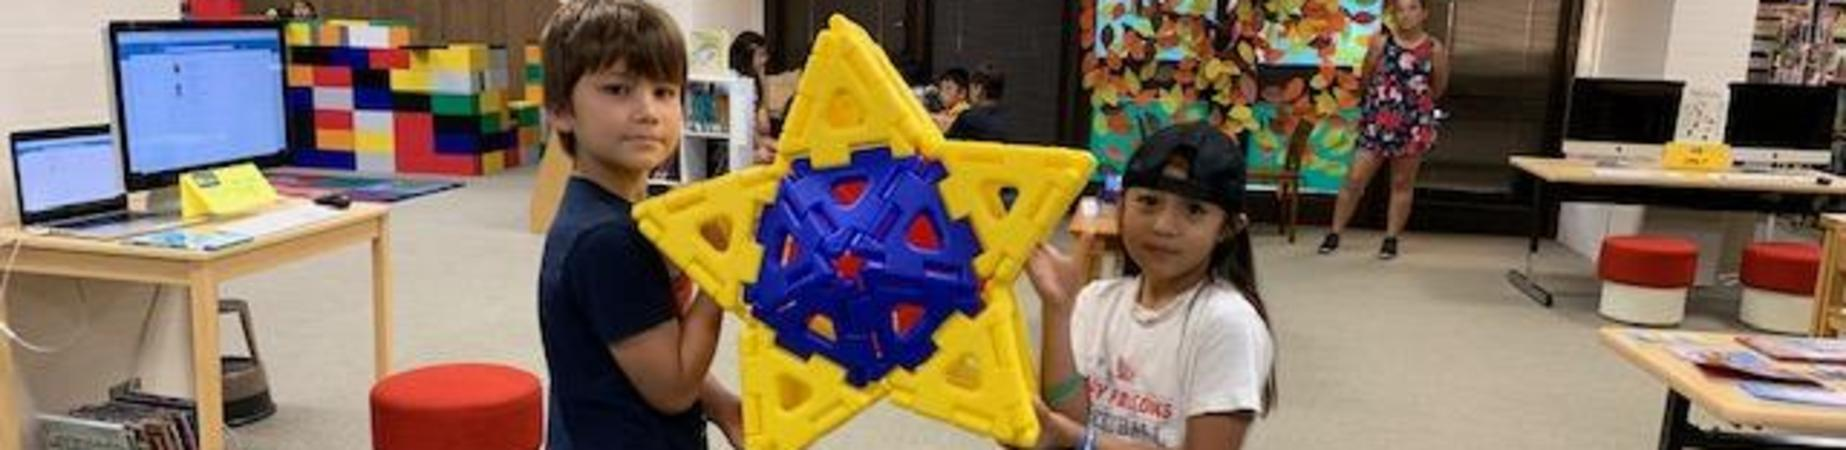 Library Free Time - Look What I Made - 2 students holding up star shape